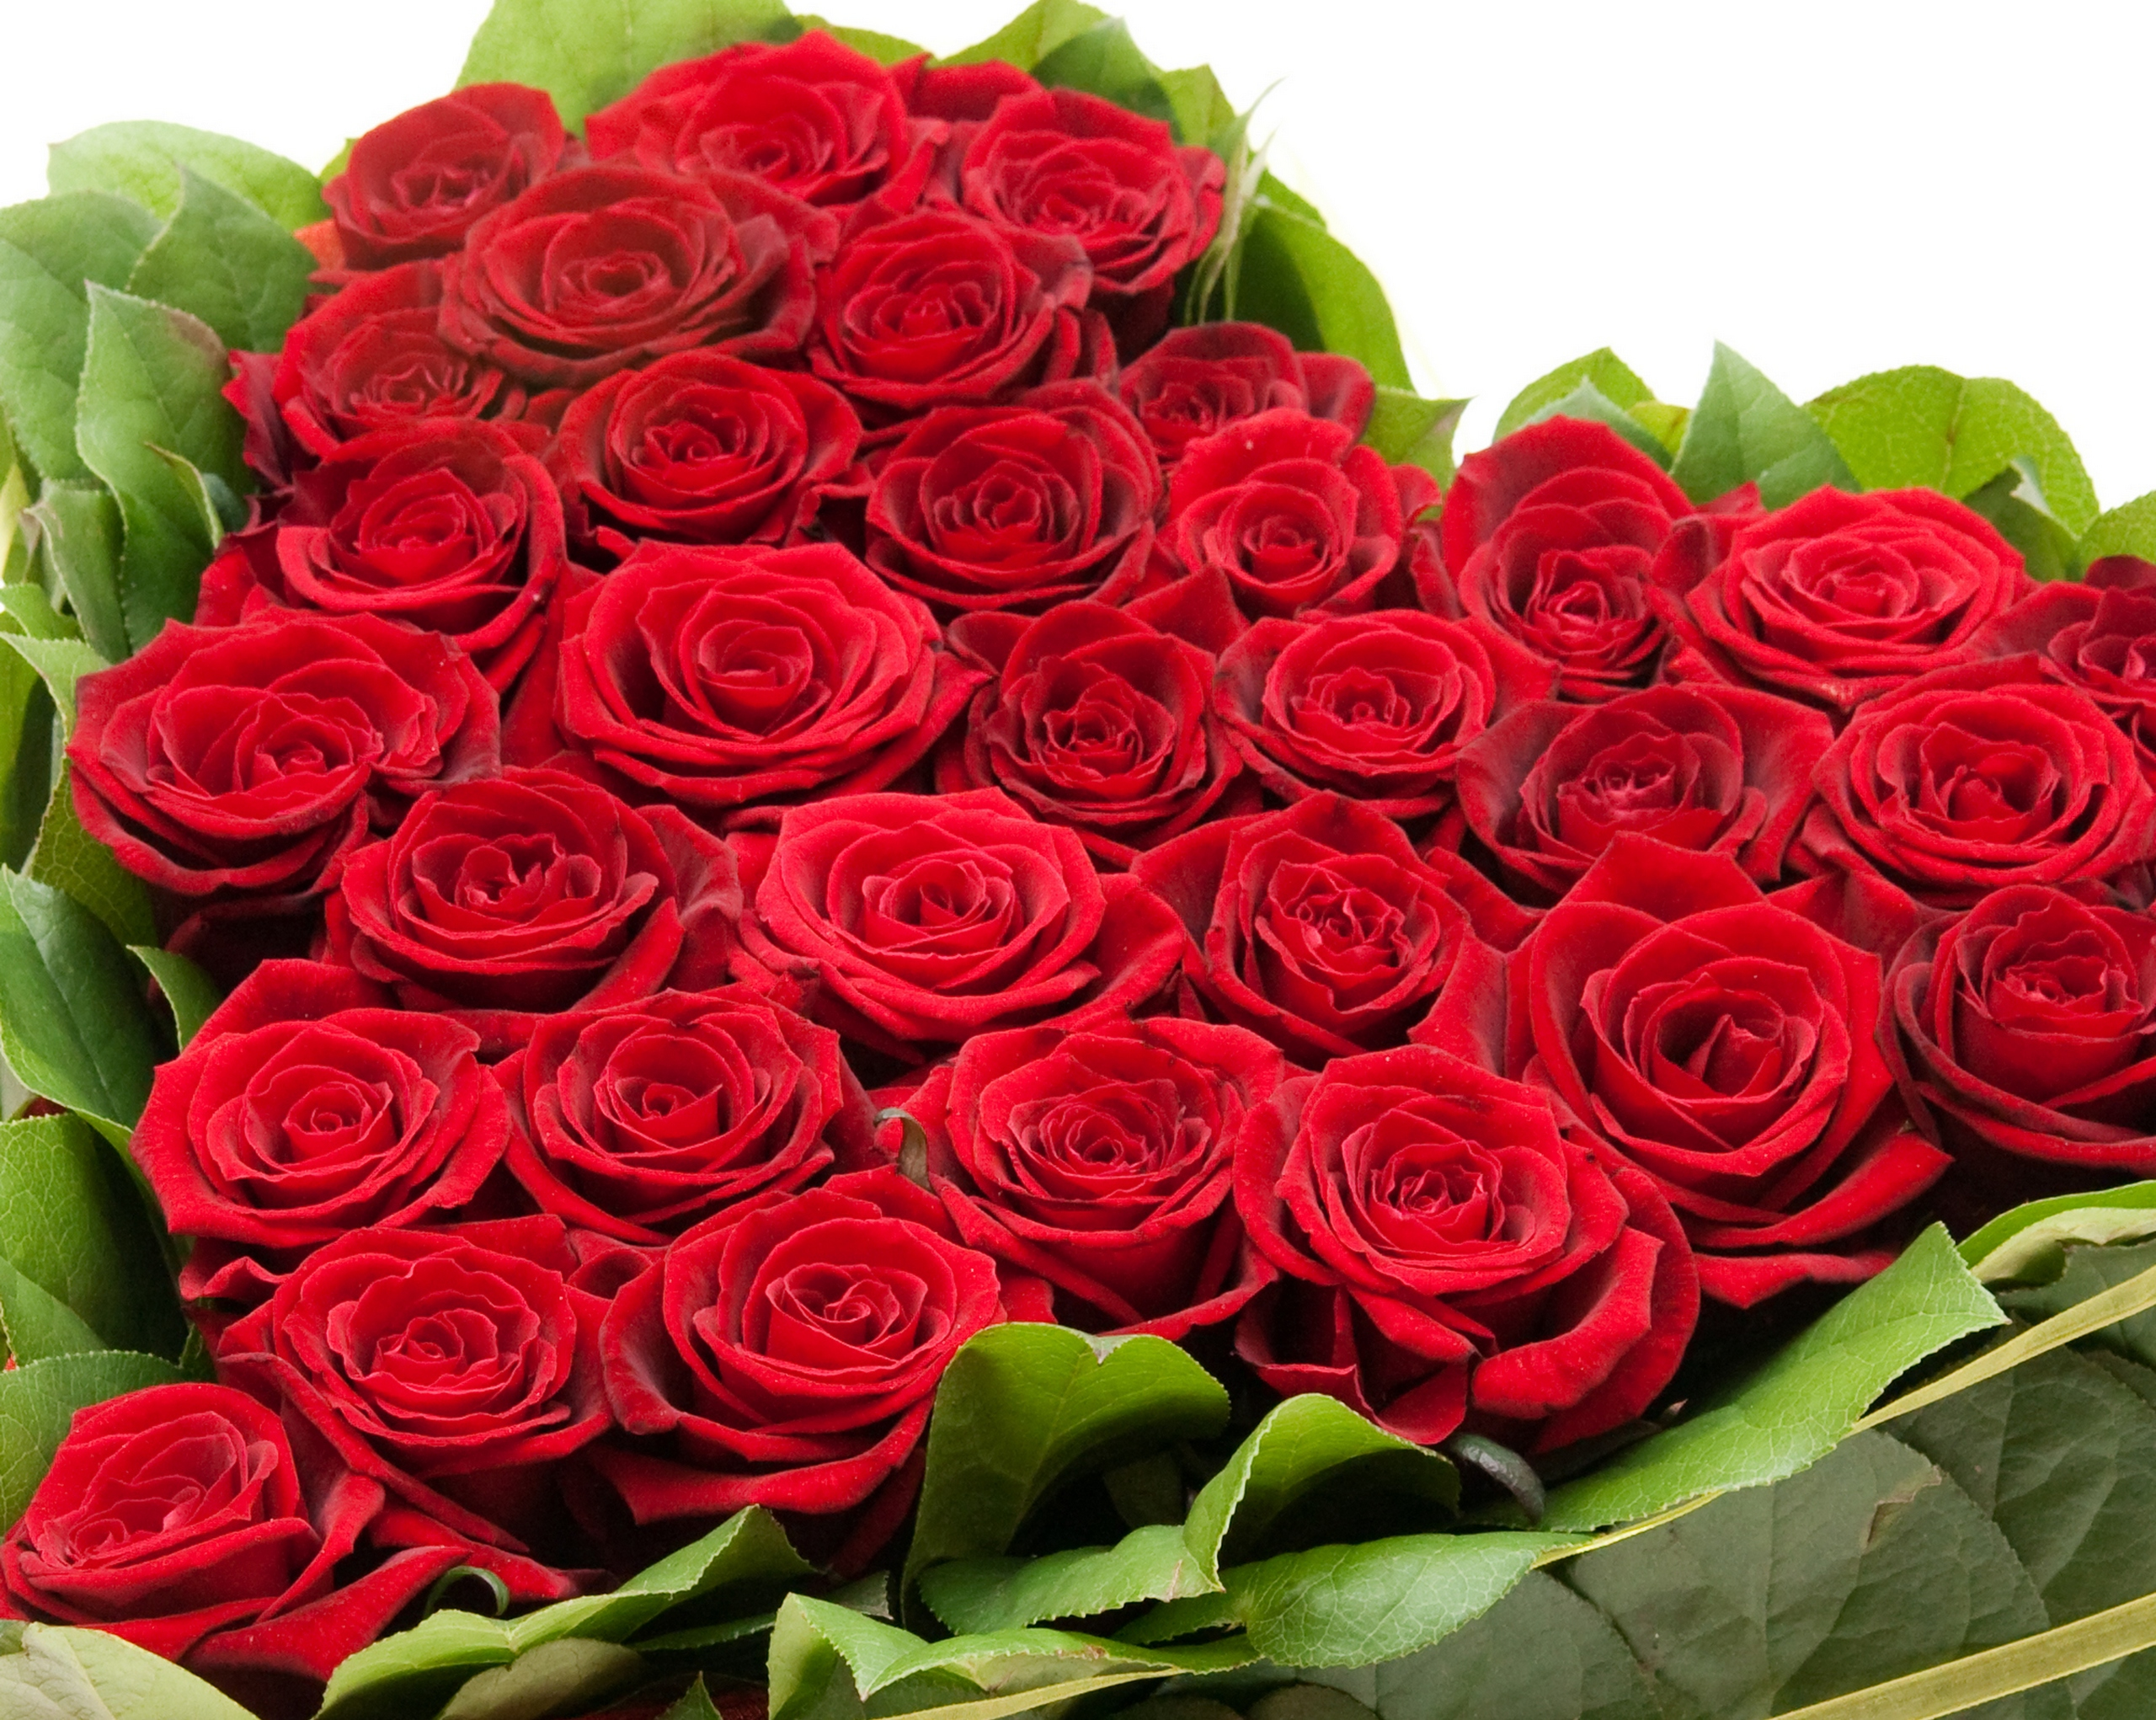 Holidays___International_Womens_Day_Bouquet_of_red_roses_on_March_8_for_girls_058035_.jpg